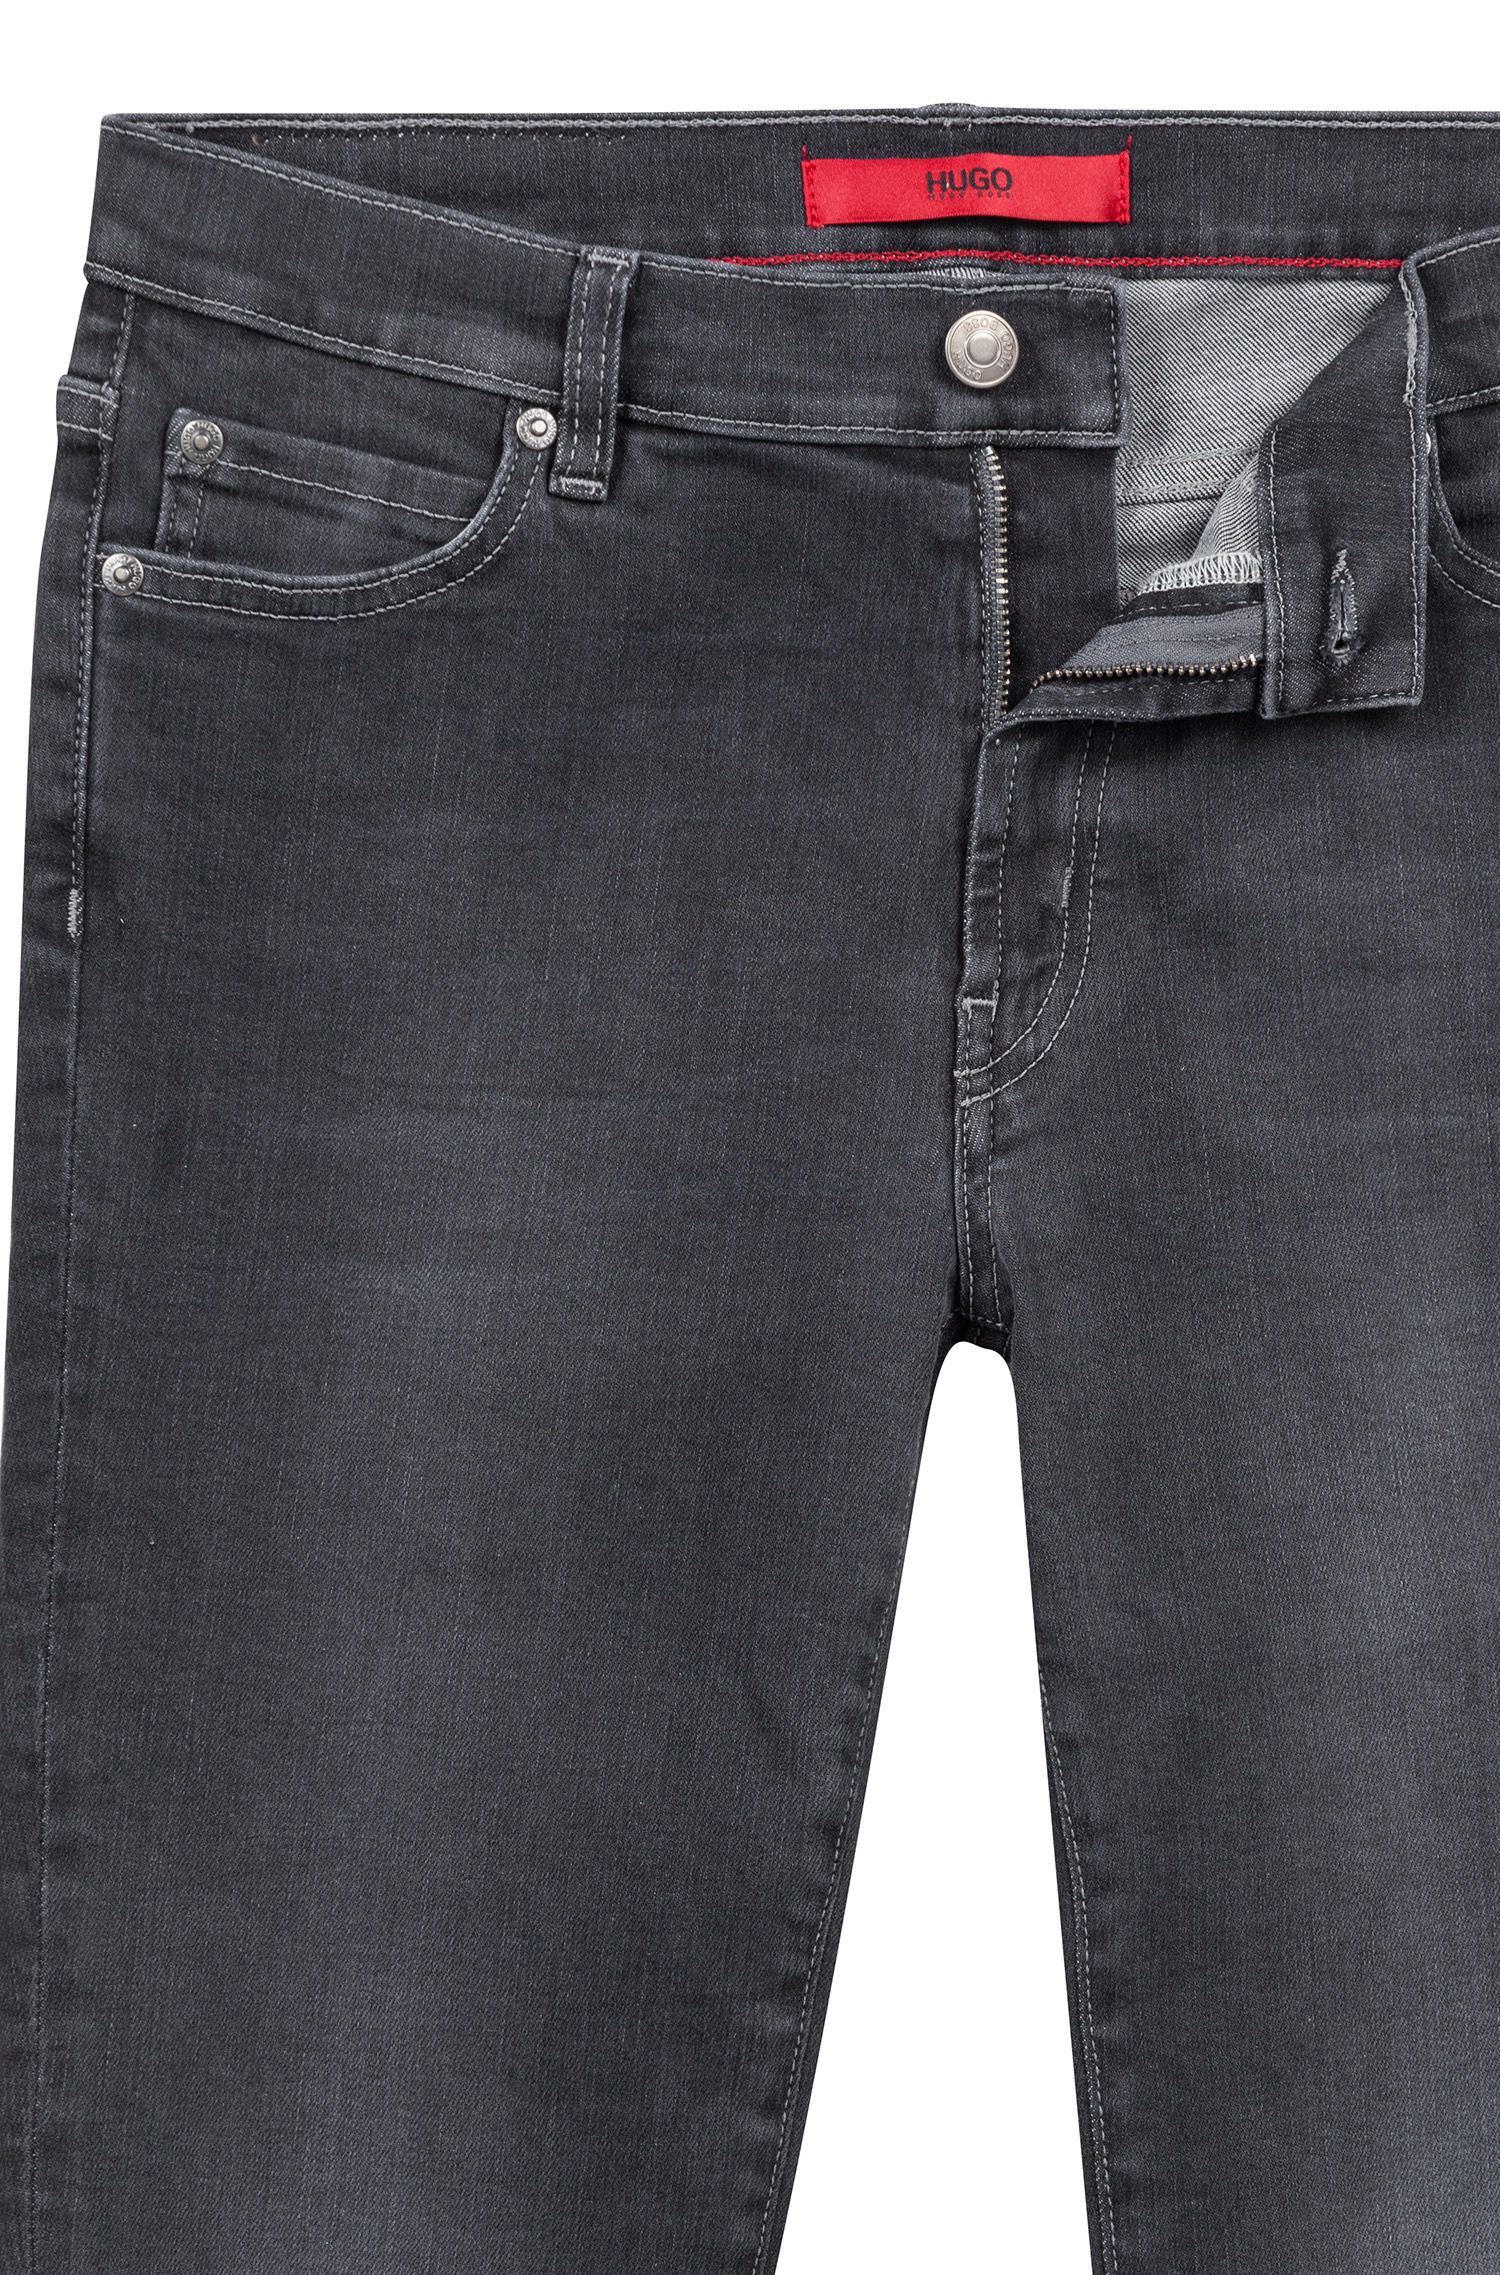 Extra Slim-Fit Jeans in Cropped-Länge mit offenen Kanten, Anthrazit